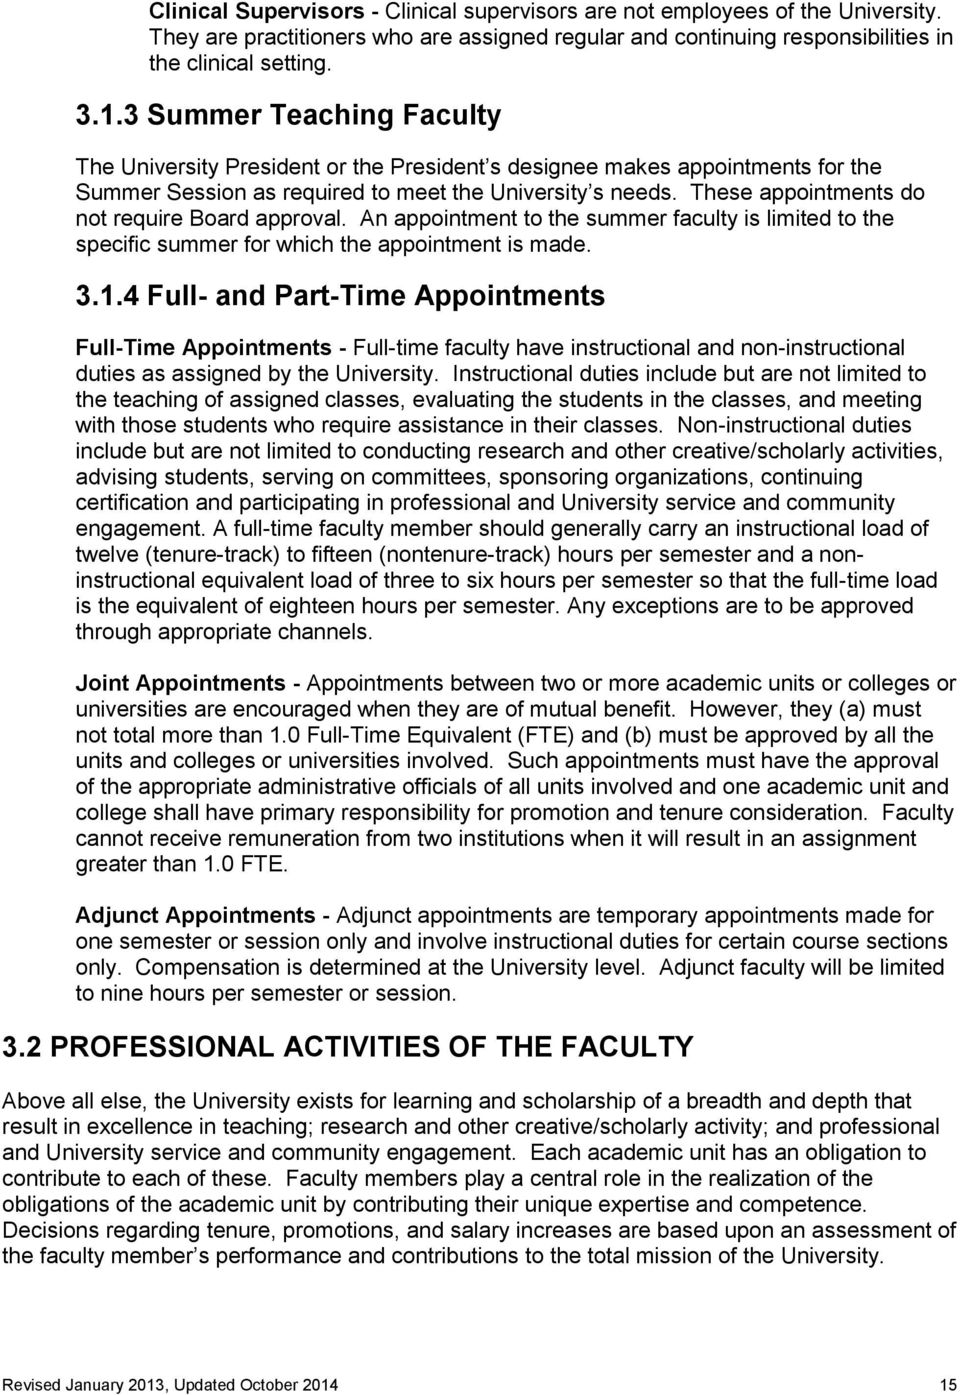 These appointments do not require Board approval. An appointment to the summer faculty is limited to the specific summer for which the appointment is made. 3.1.